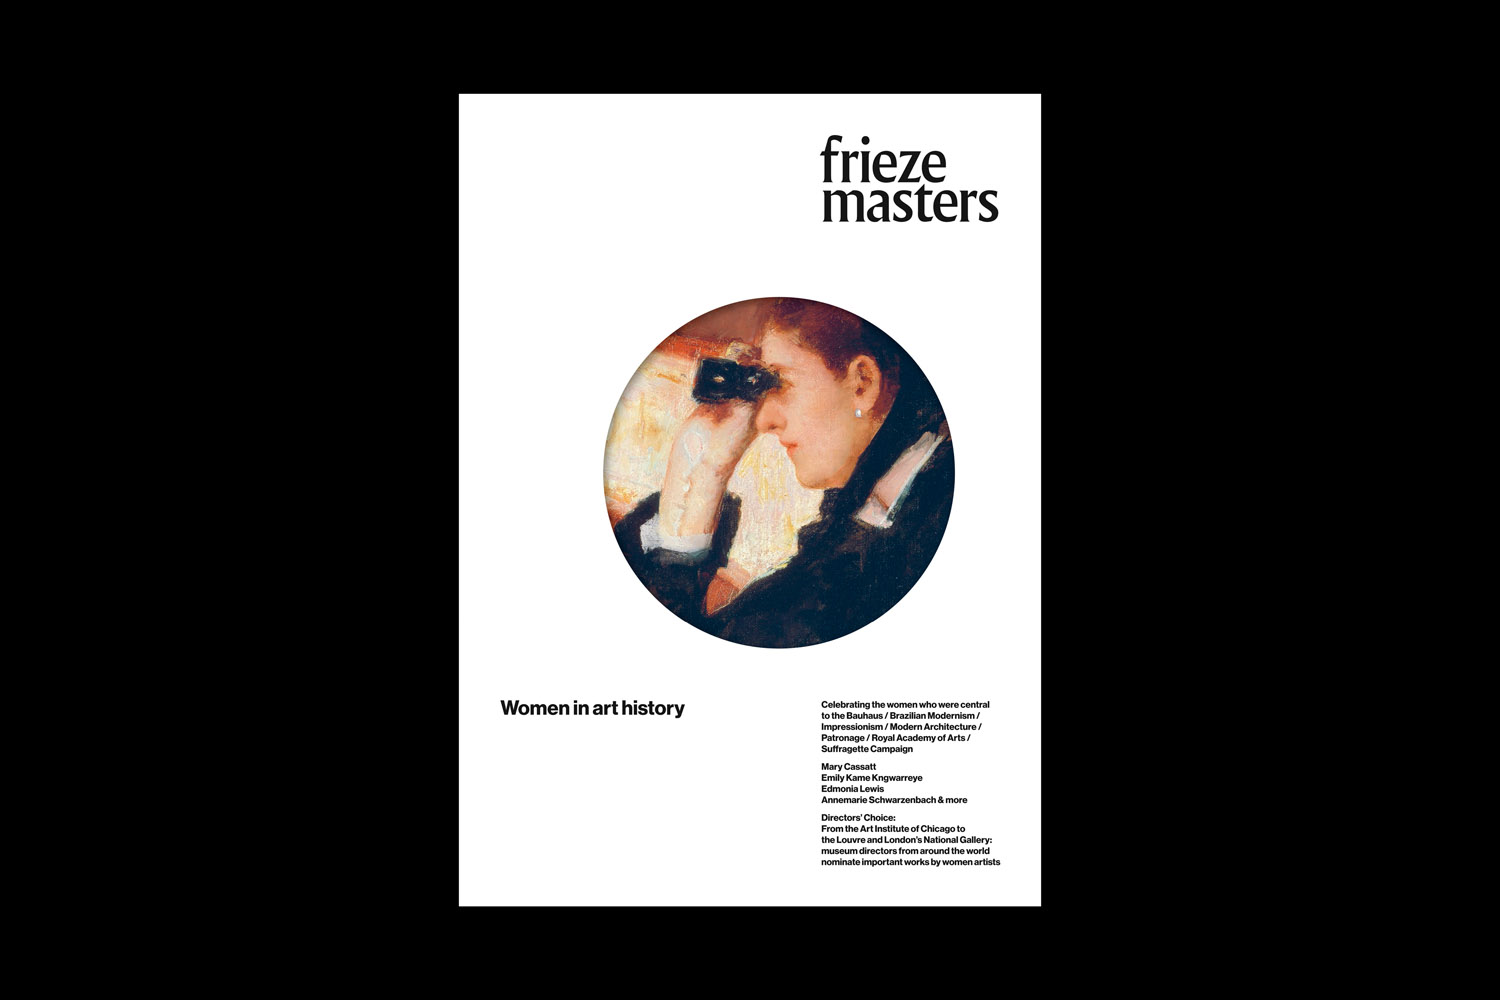 a022 Frieze Masters 7 2018-